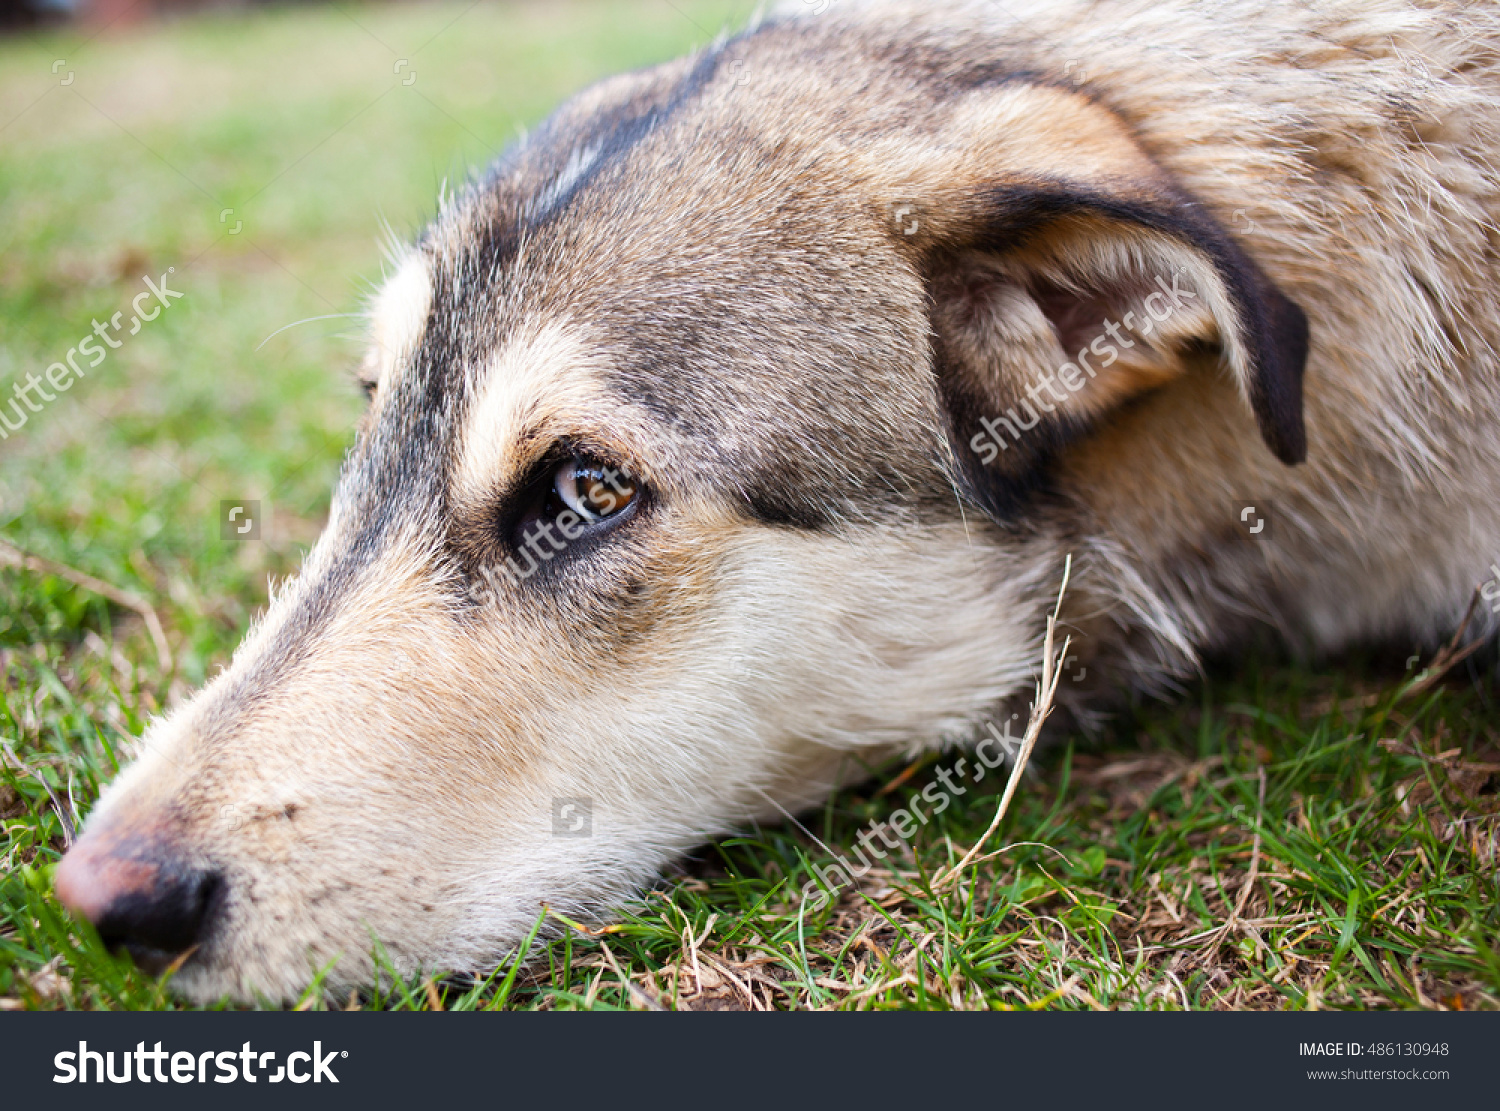 Thoughtful Dog Sitting His Head On Stock Photo 486130948.